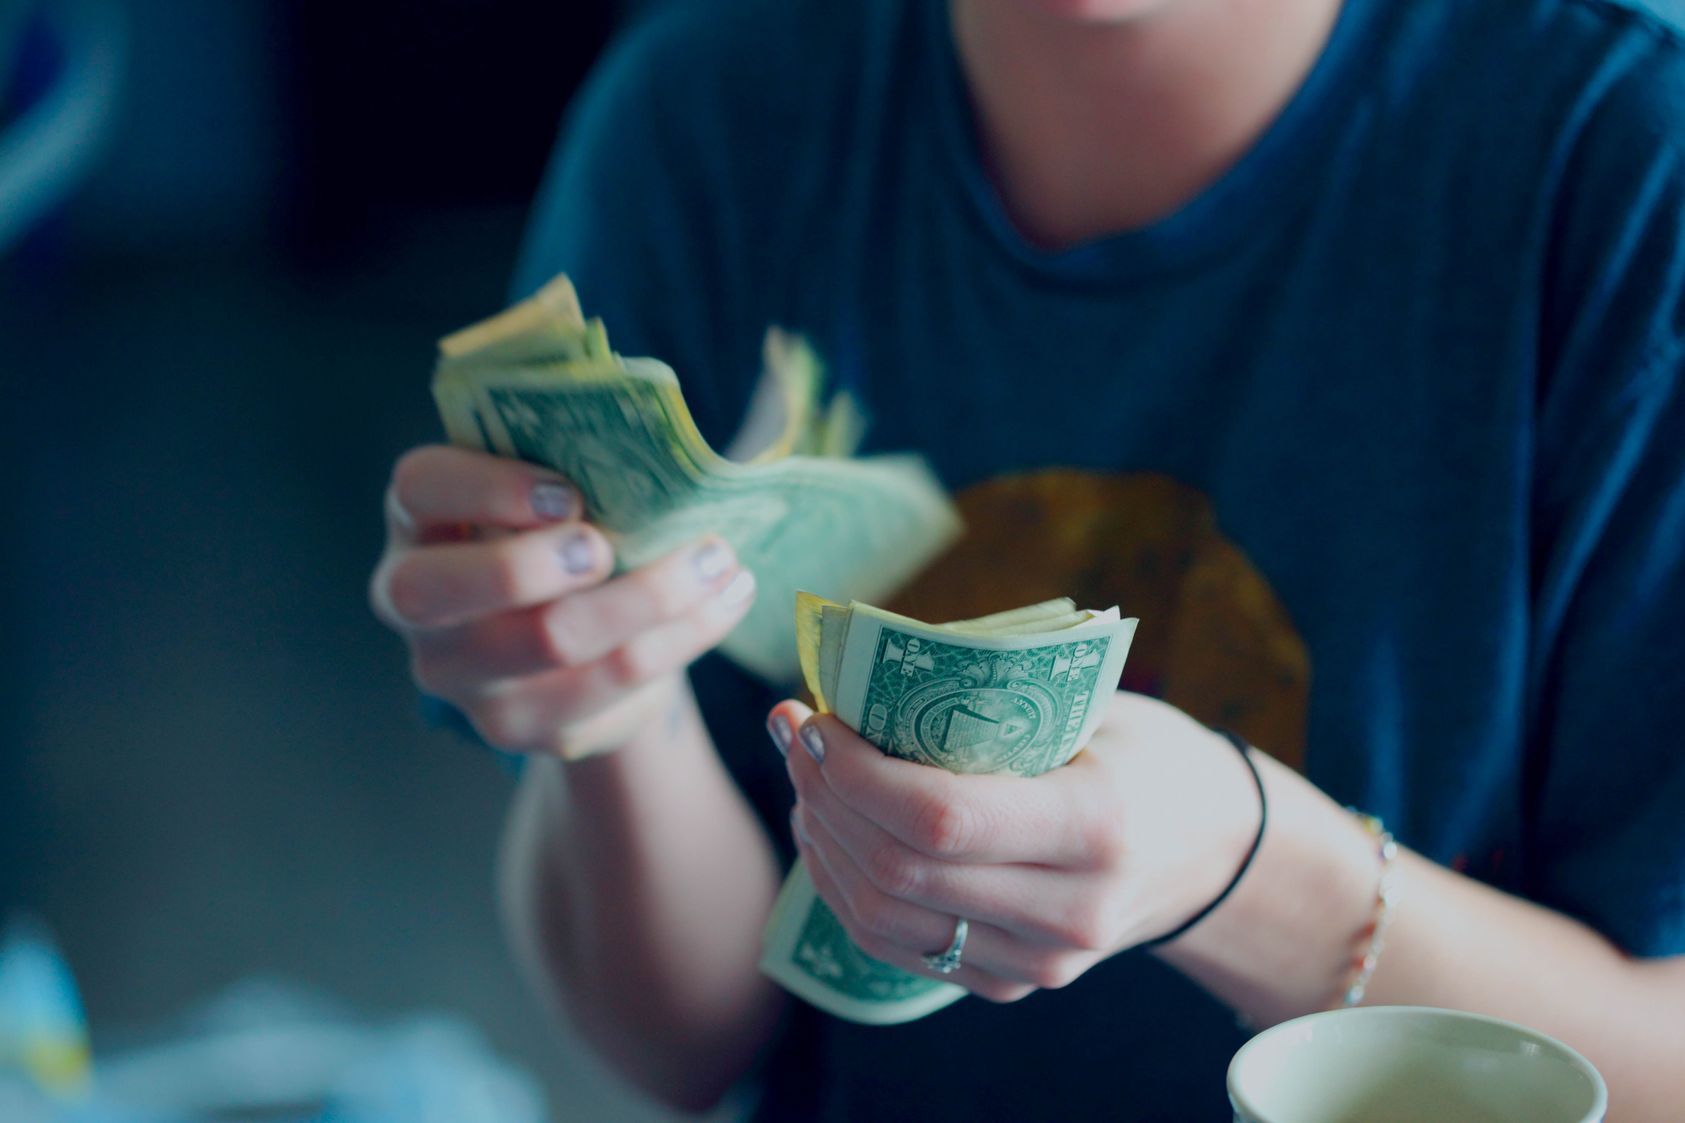 Woman's hands counting out multiple dollar bills